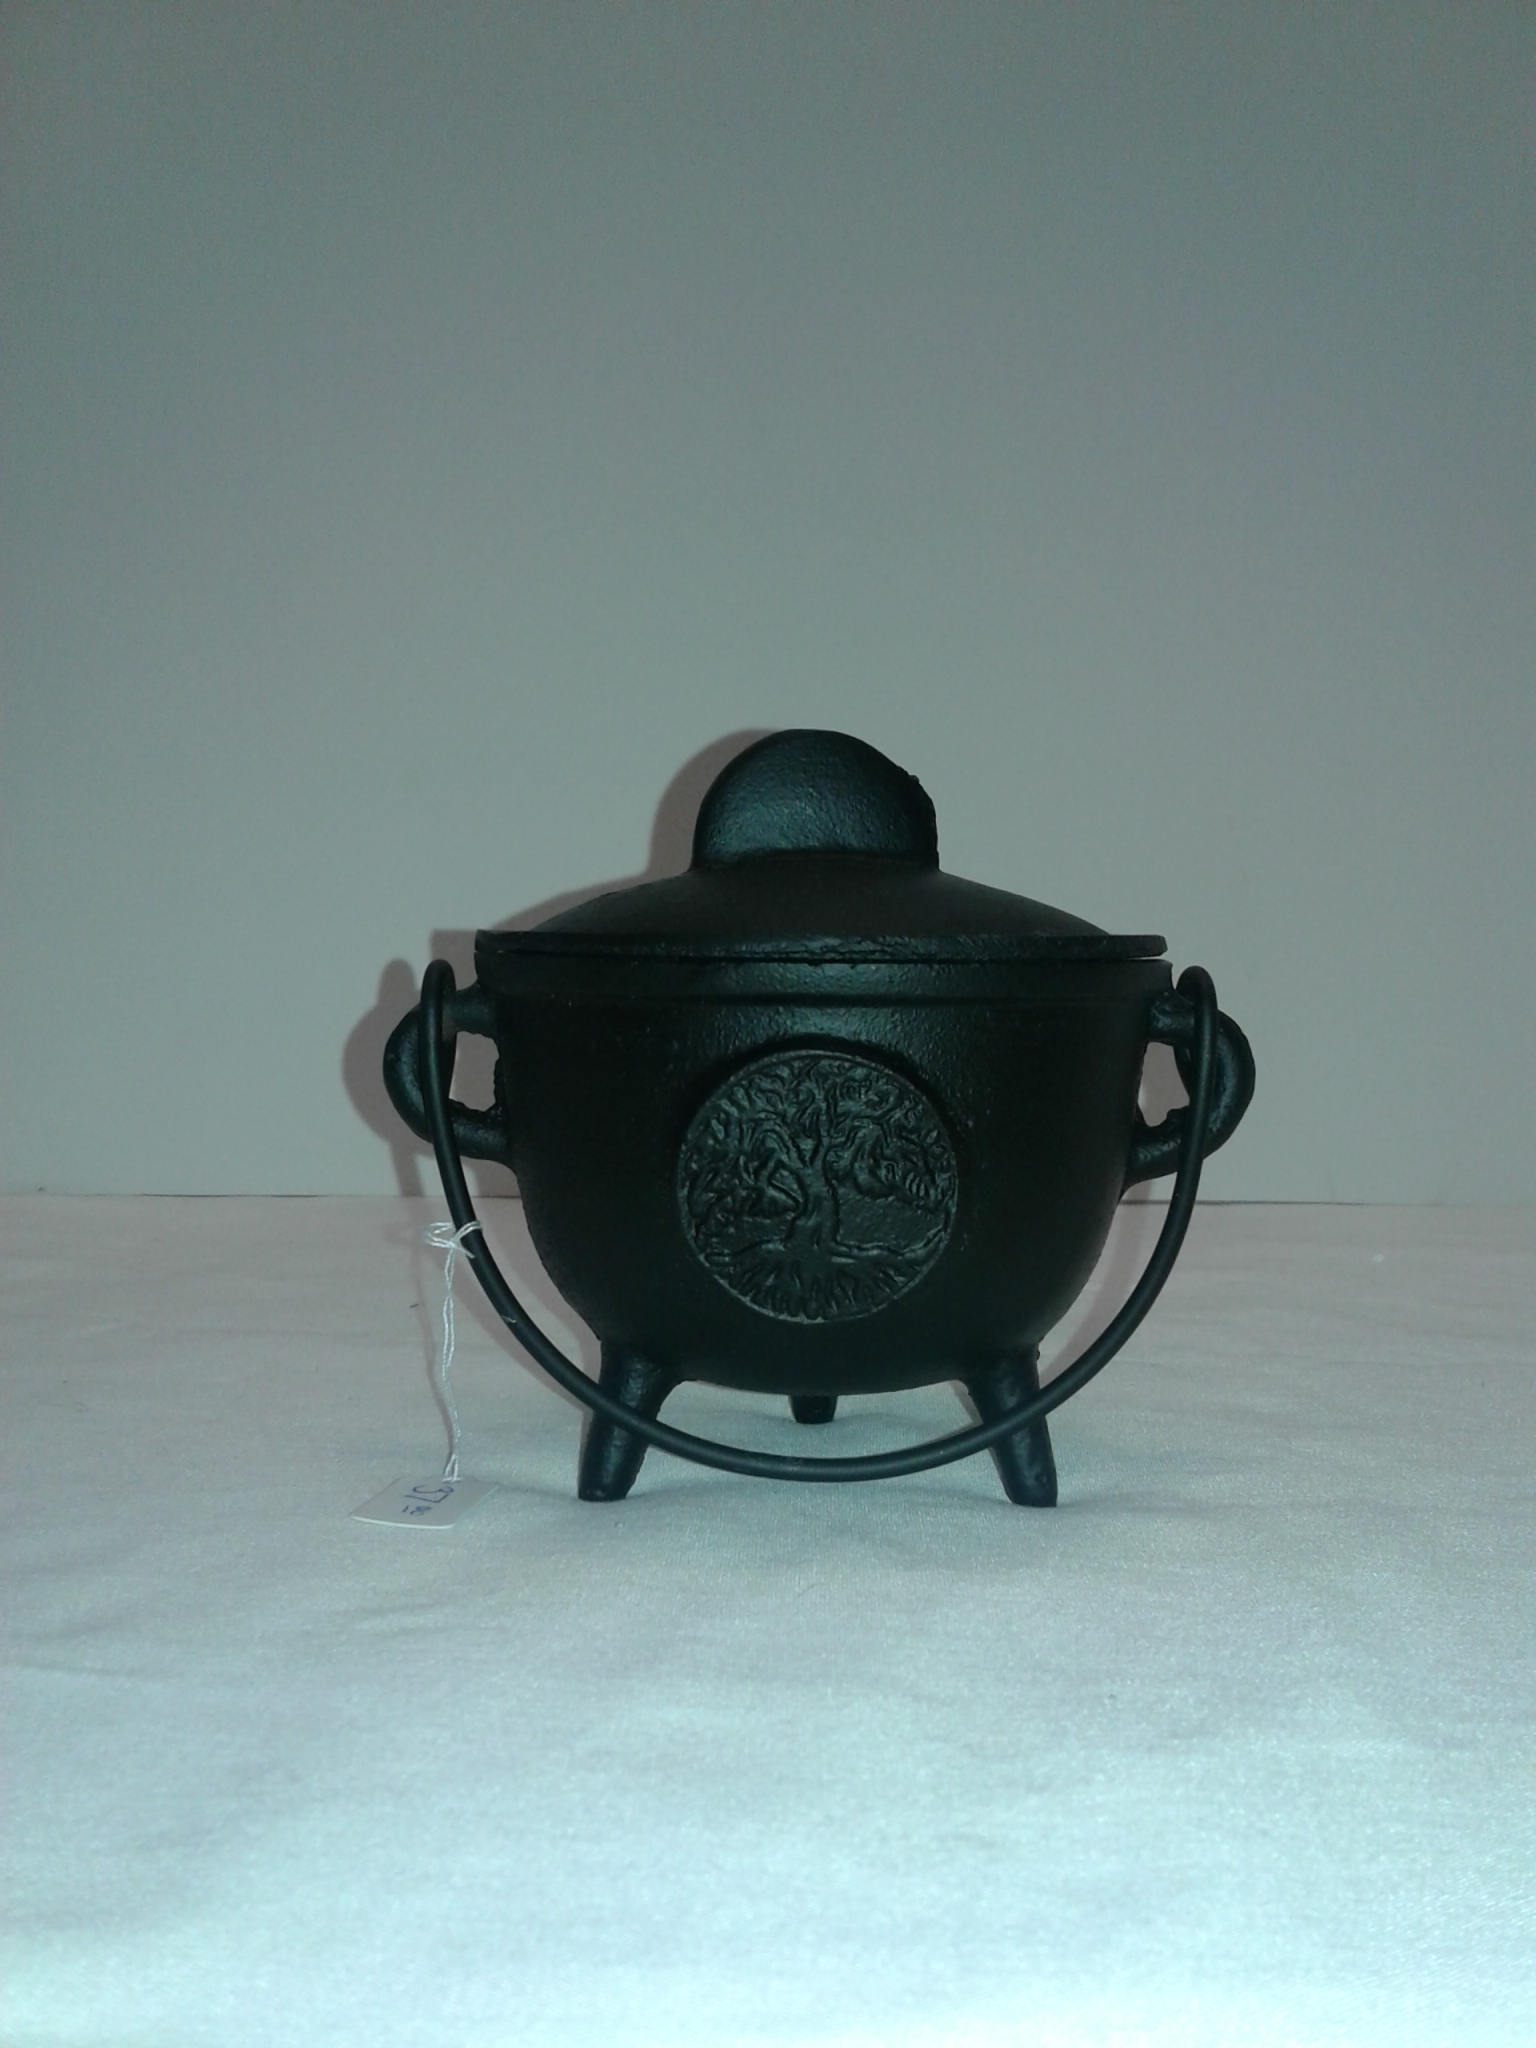 cauldron with Tree of life